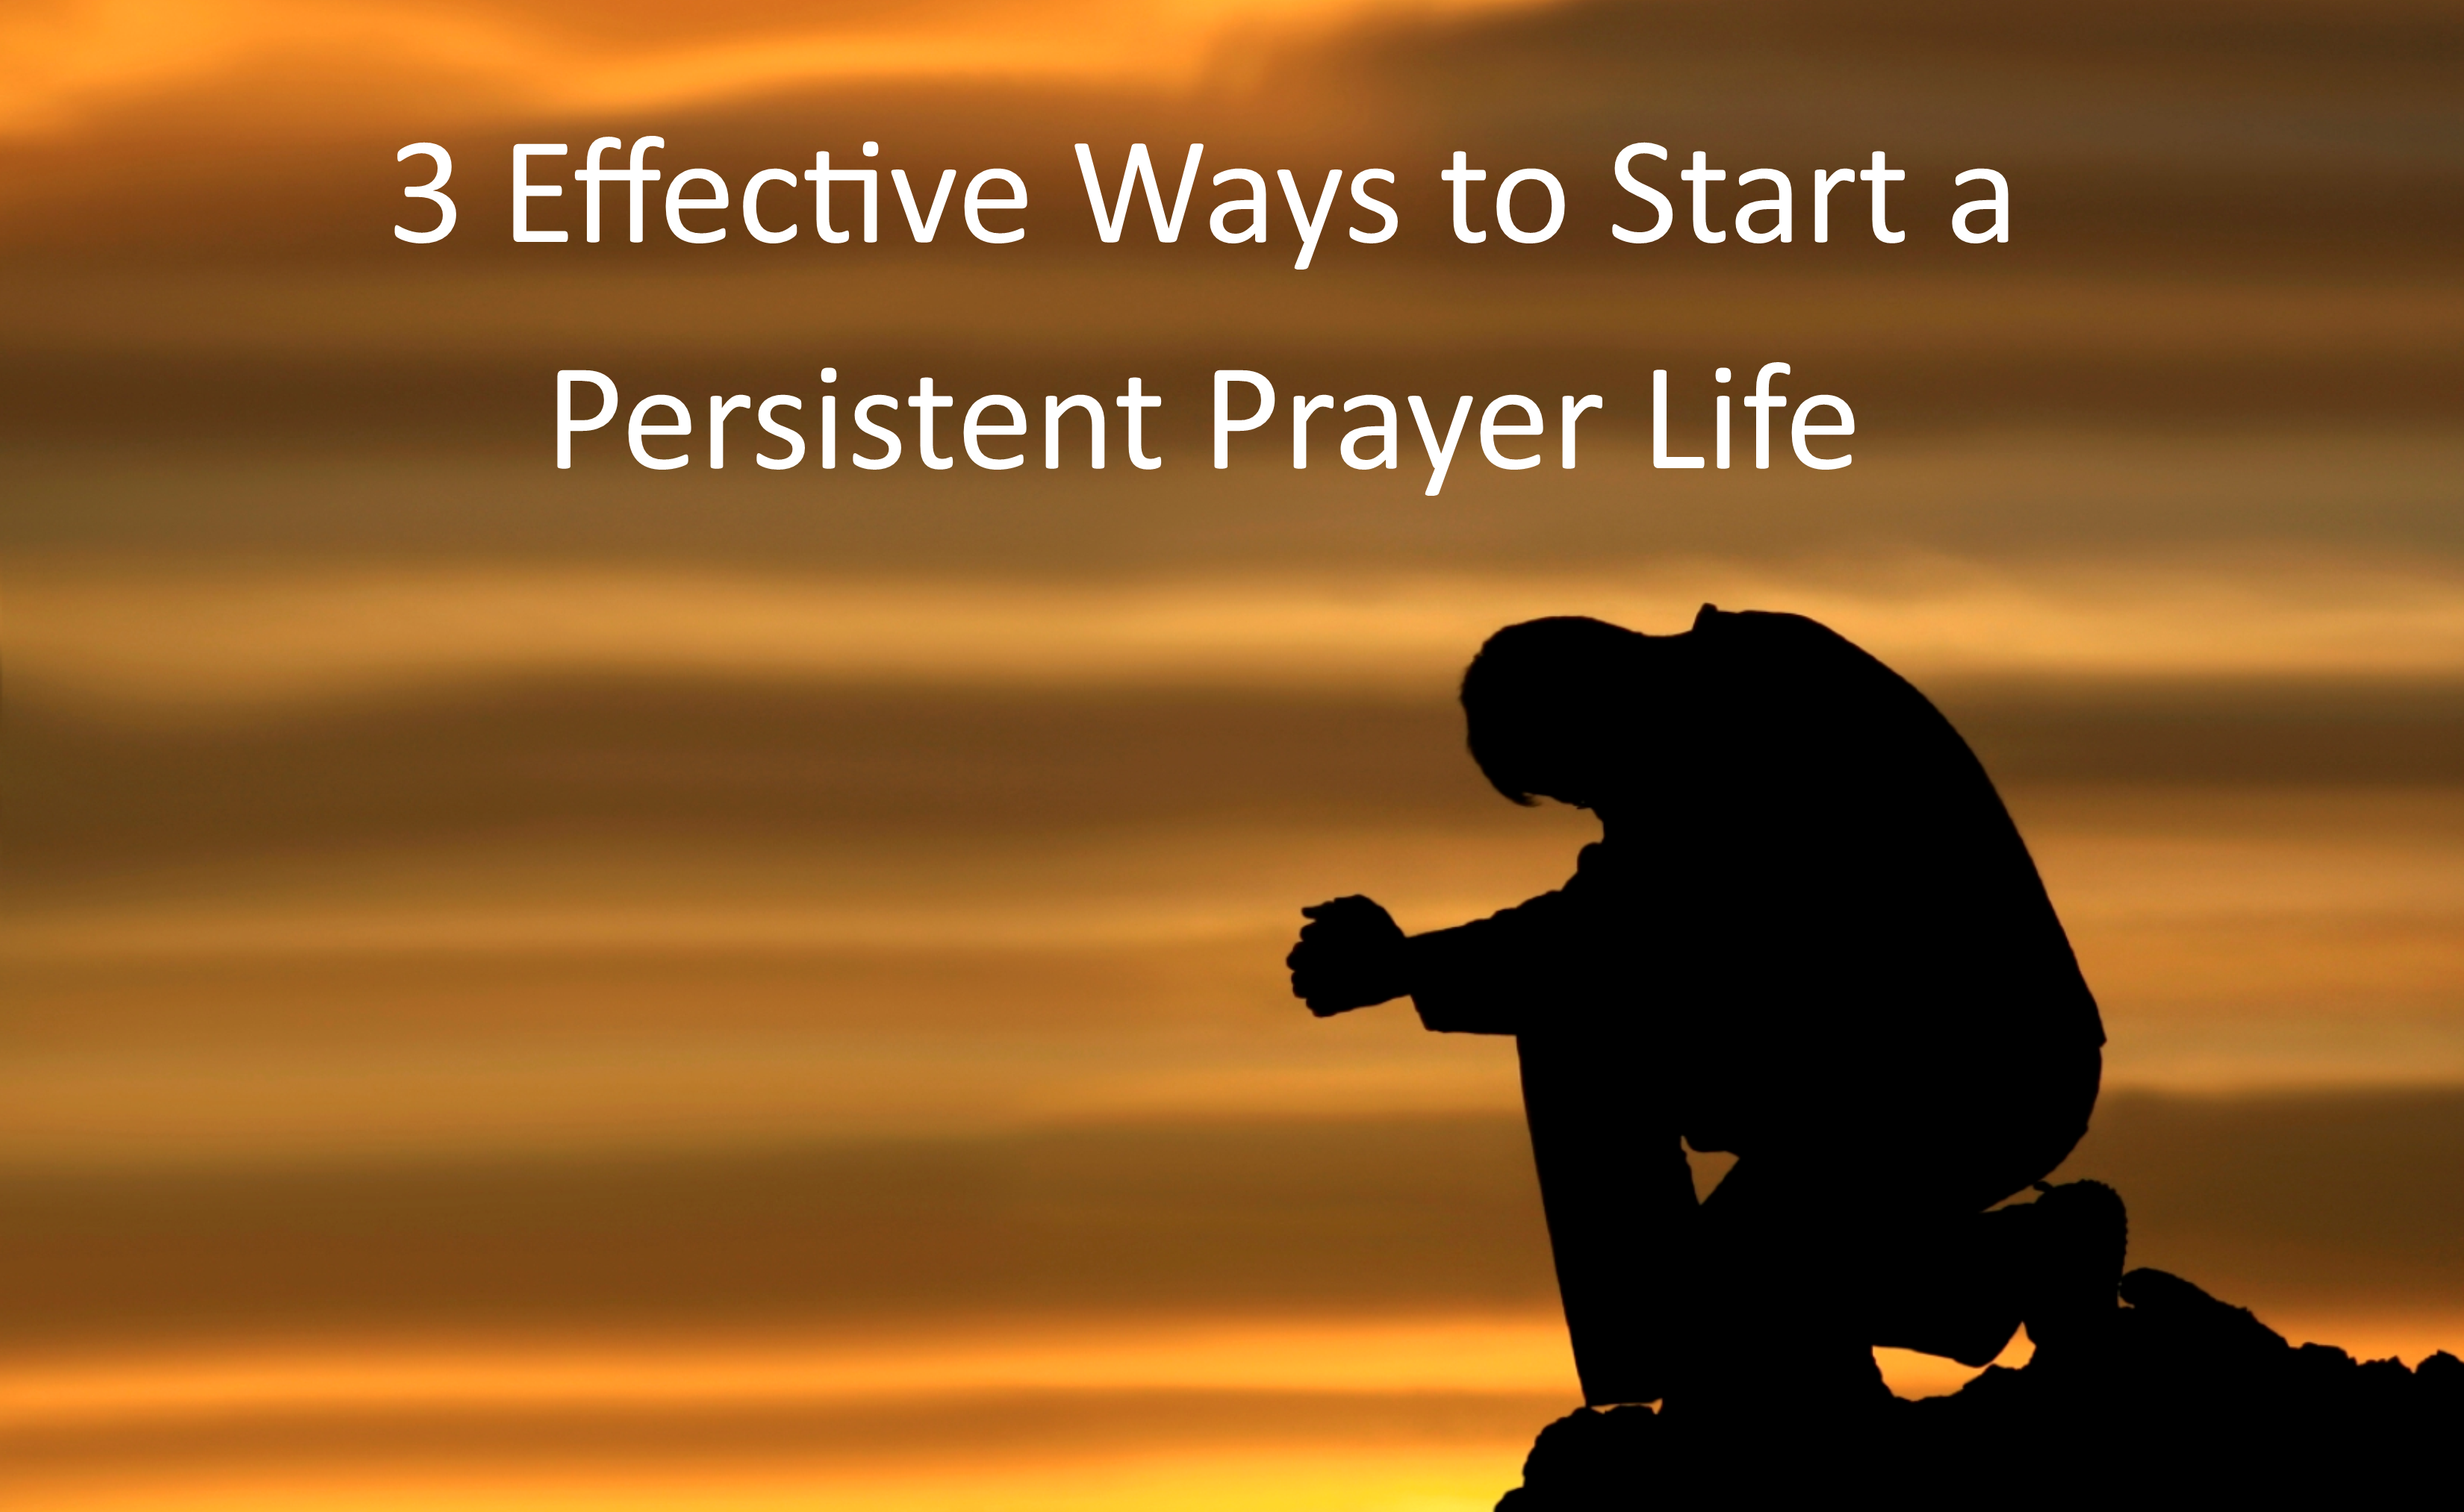 Three Effective Ways to Start a Persistent Prayer Life